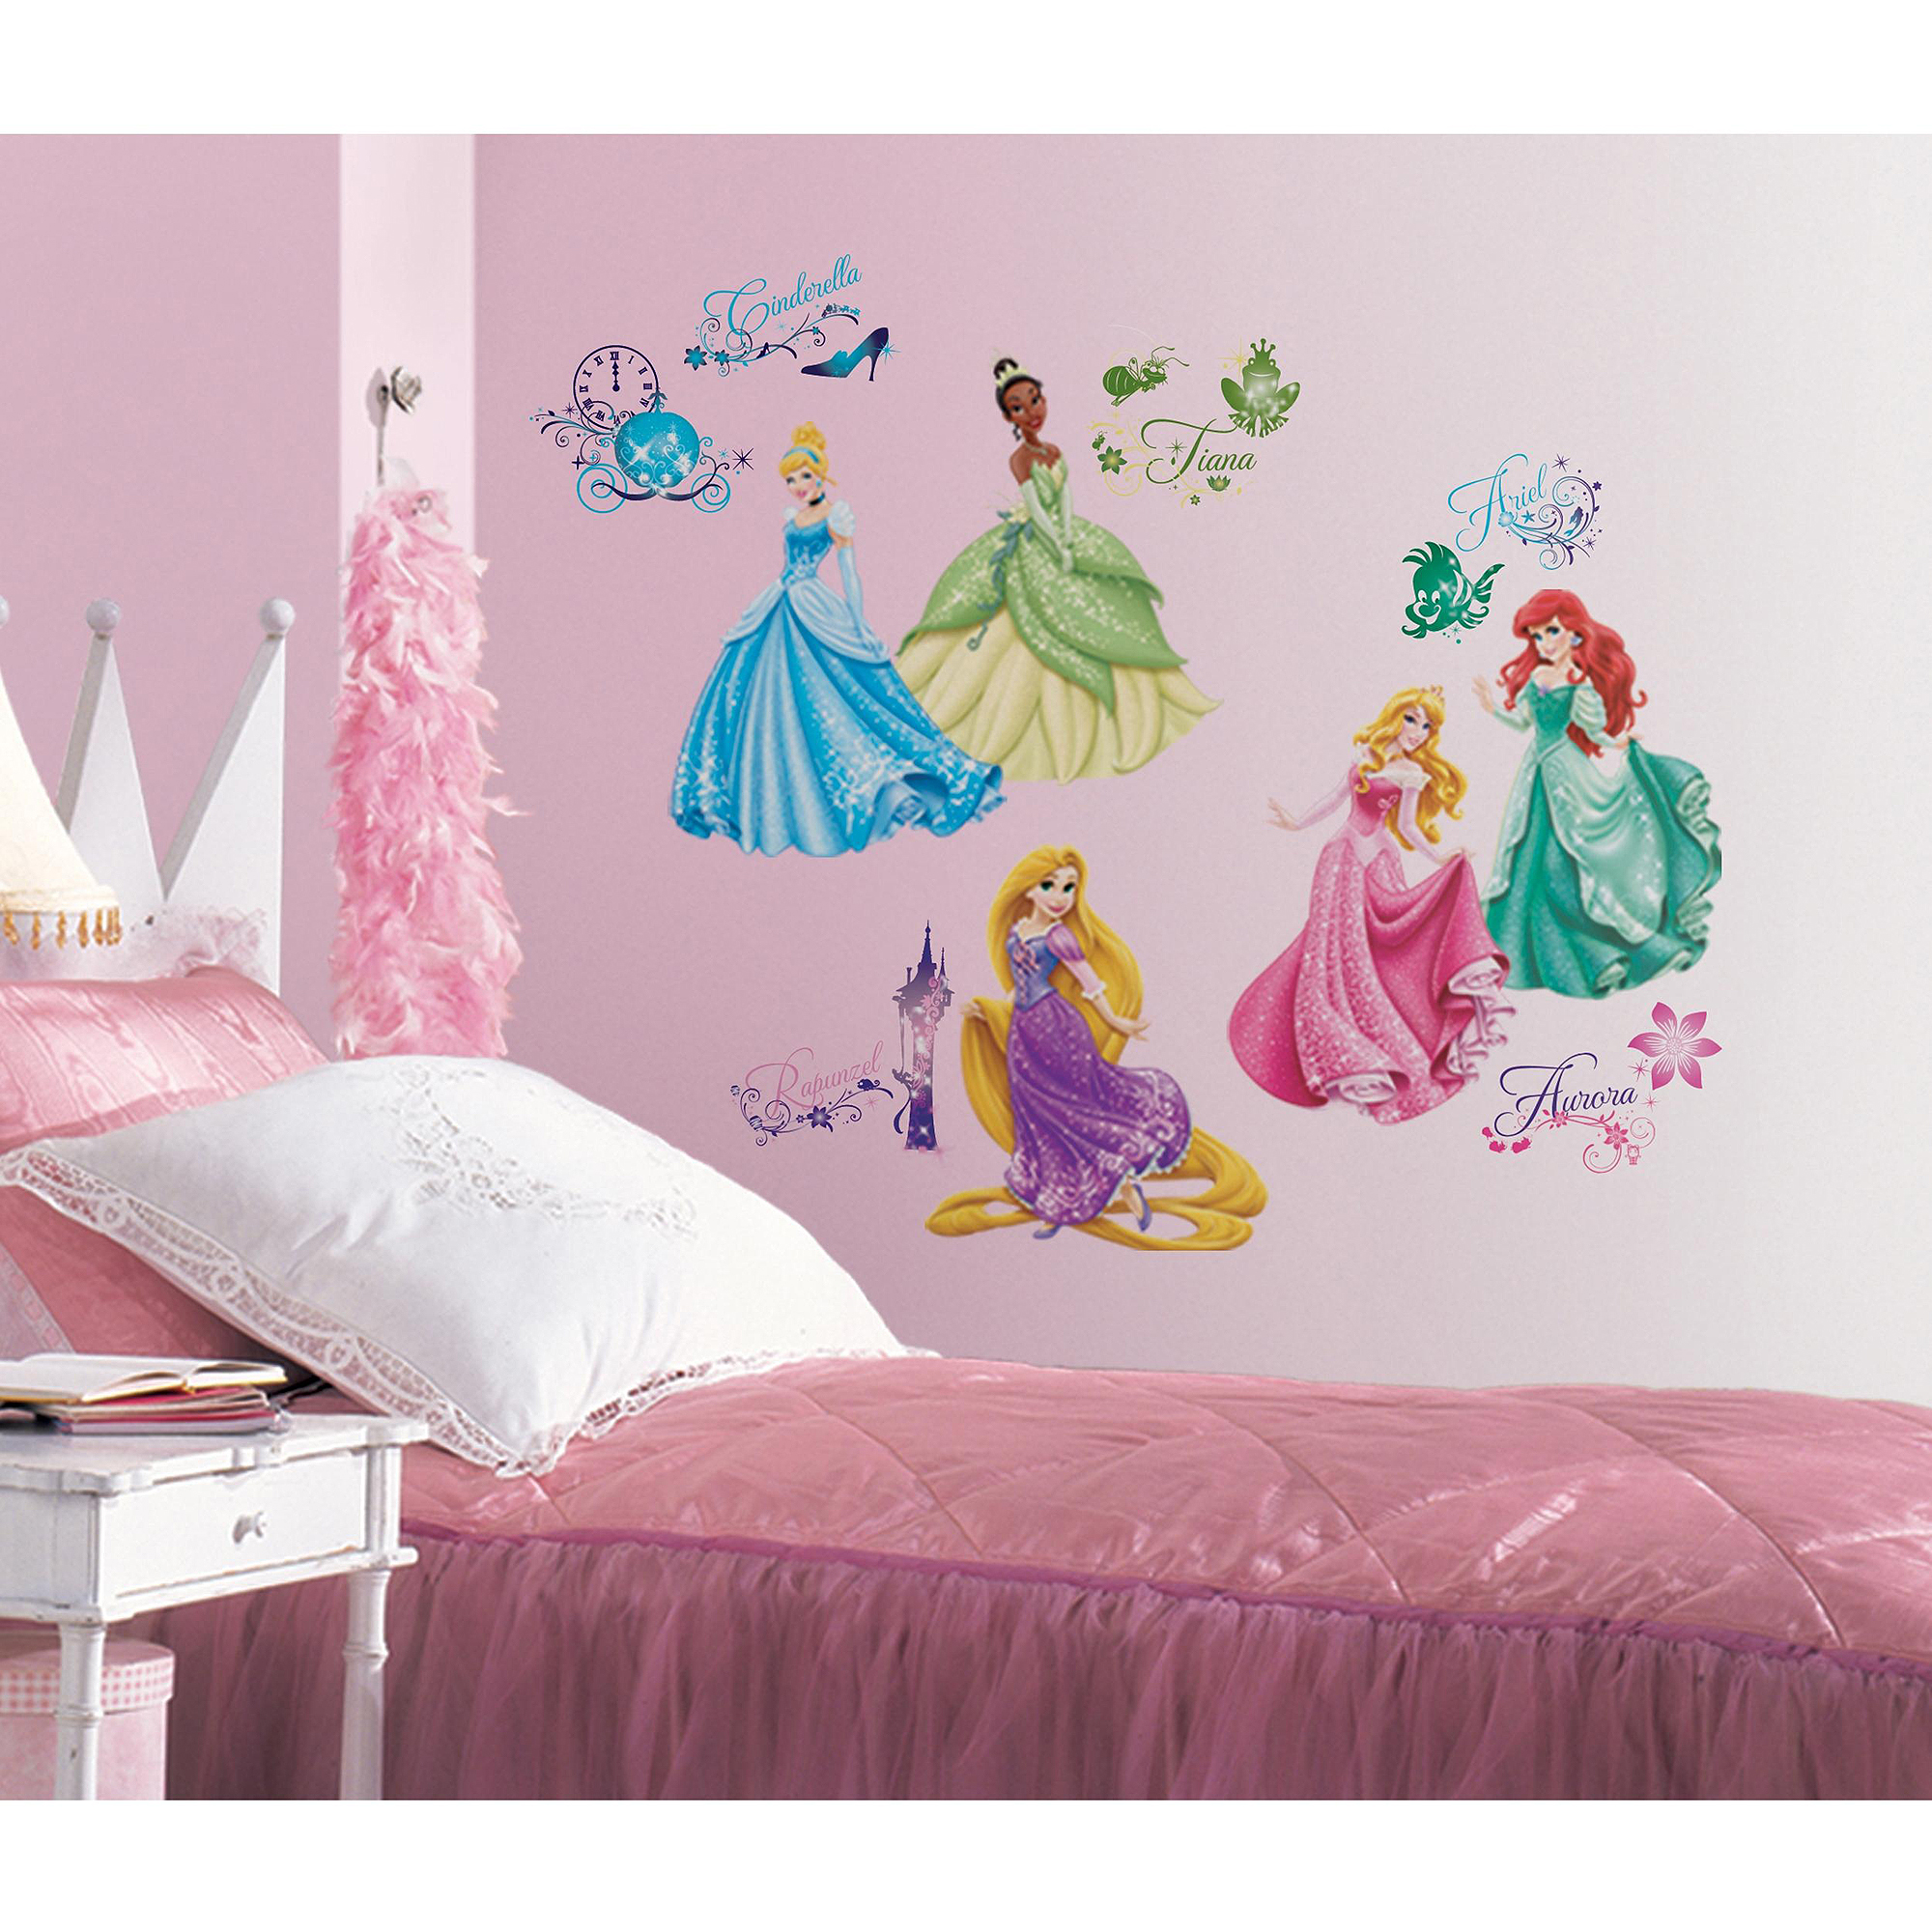 Disney princess royal debut peel and stick wall decals walmart amipublicfo Gallery